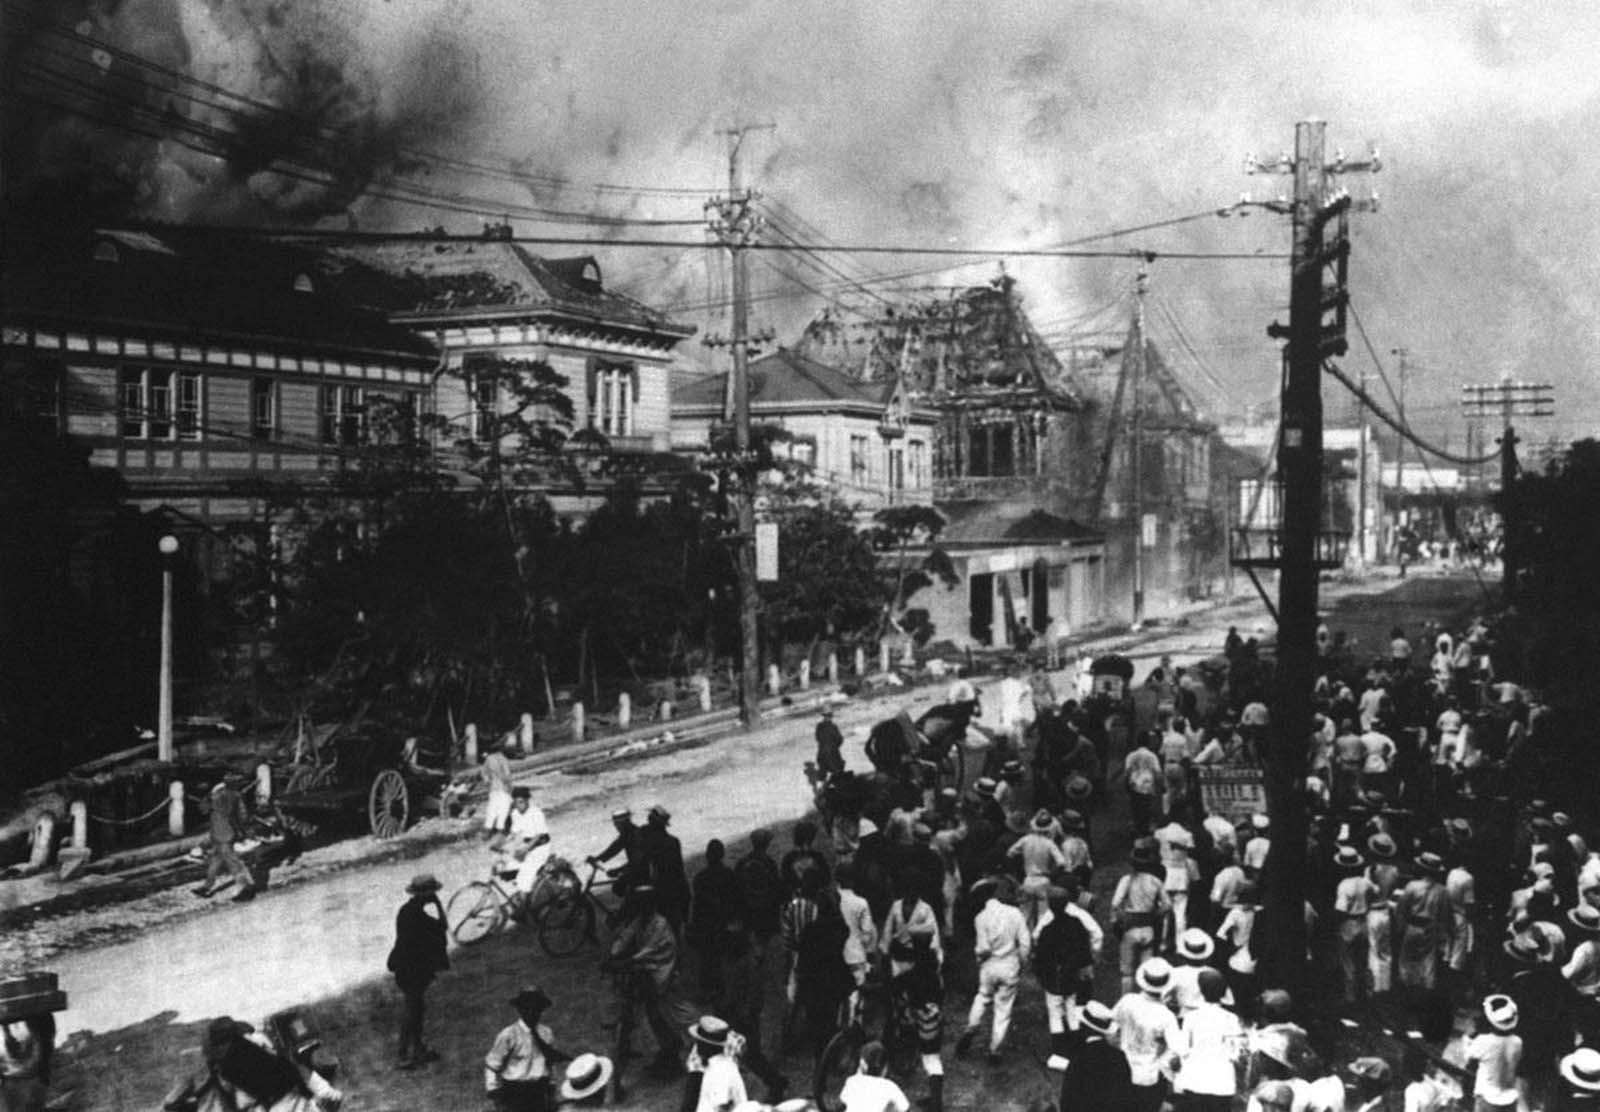 People take refuge on a Nihonbashi street in Japan in 1923. Buildings across the streets are burning and billowing smoke and flame from an earthquake that hit.